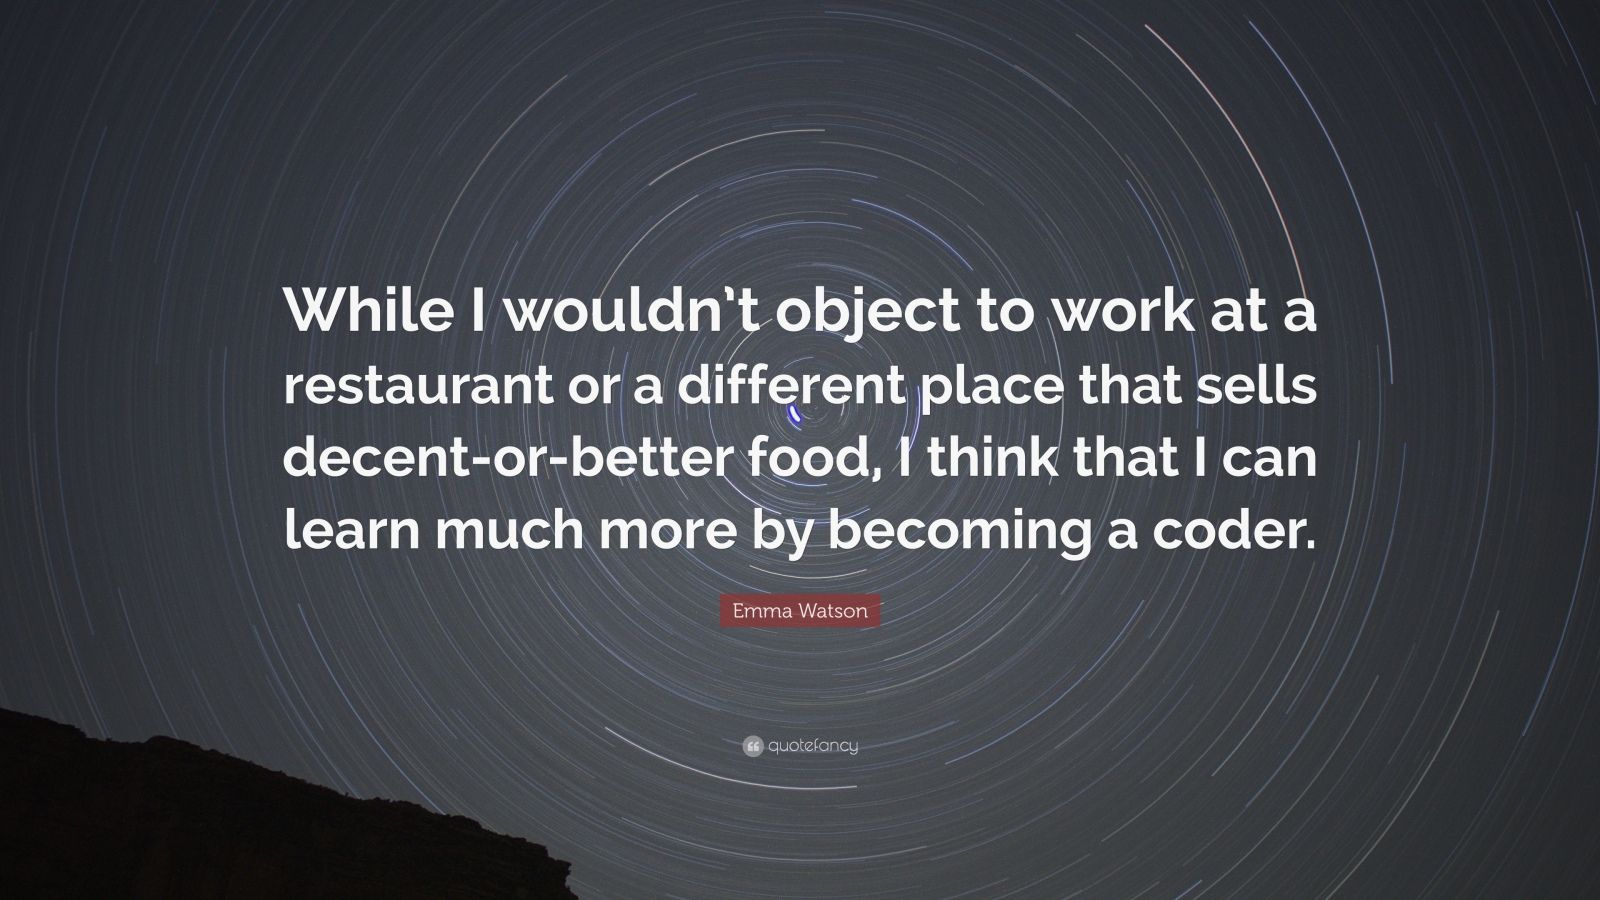 "Emma Watson Quote: ""While I wouldn't object to work at a restaurant or a different place that sells decent-or-better food, I think that I can learn much more by becoming a coder."""